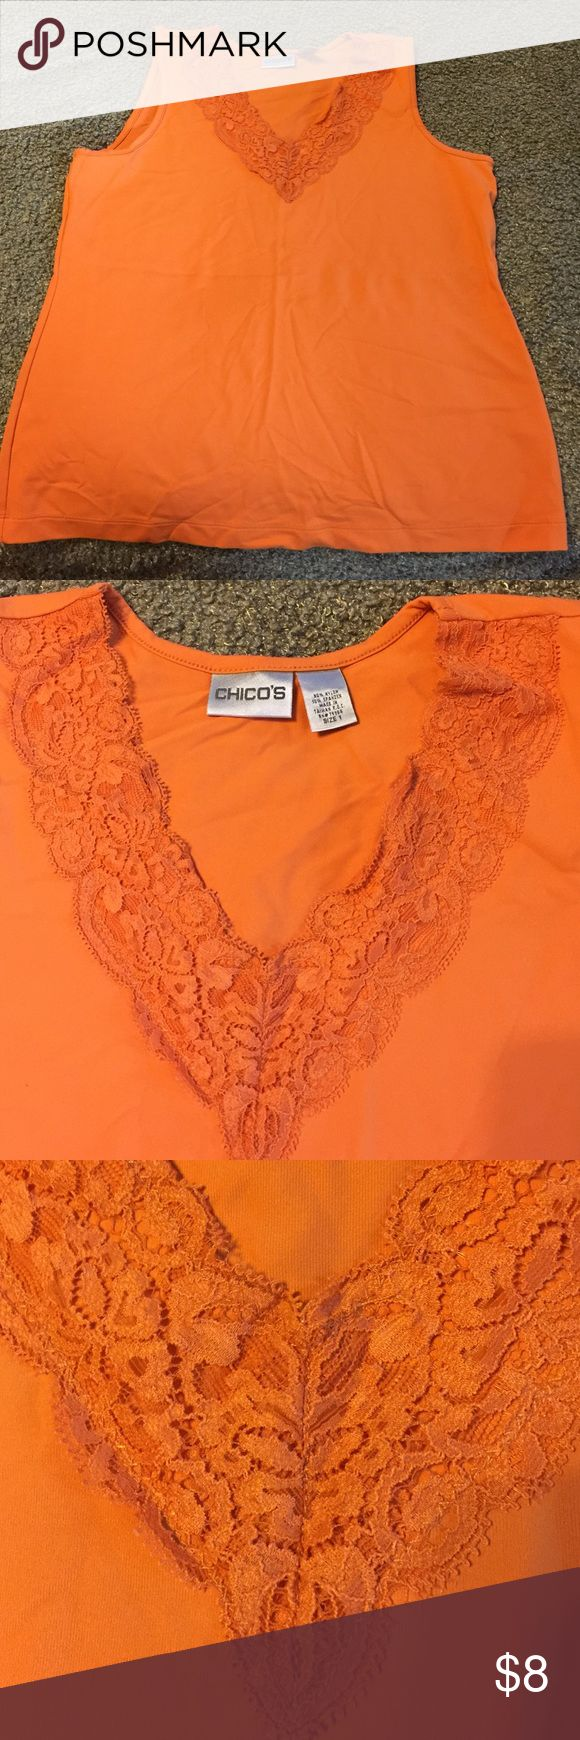 Chico's sleeveless top Soft and silky with lace surrounding the vneck!  Adorable!  Chico's size 1. Chico's Tops Camisoles